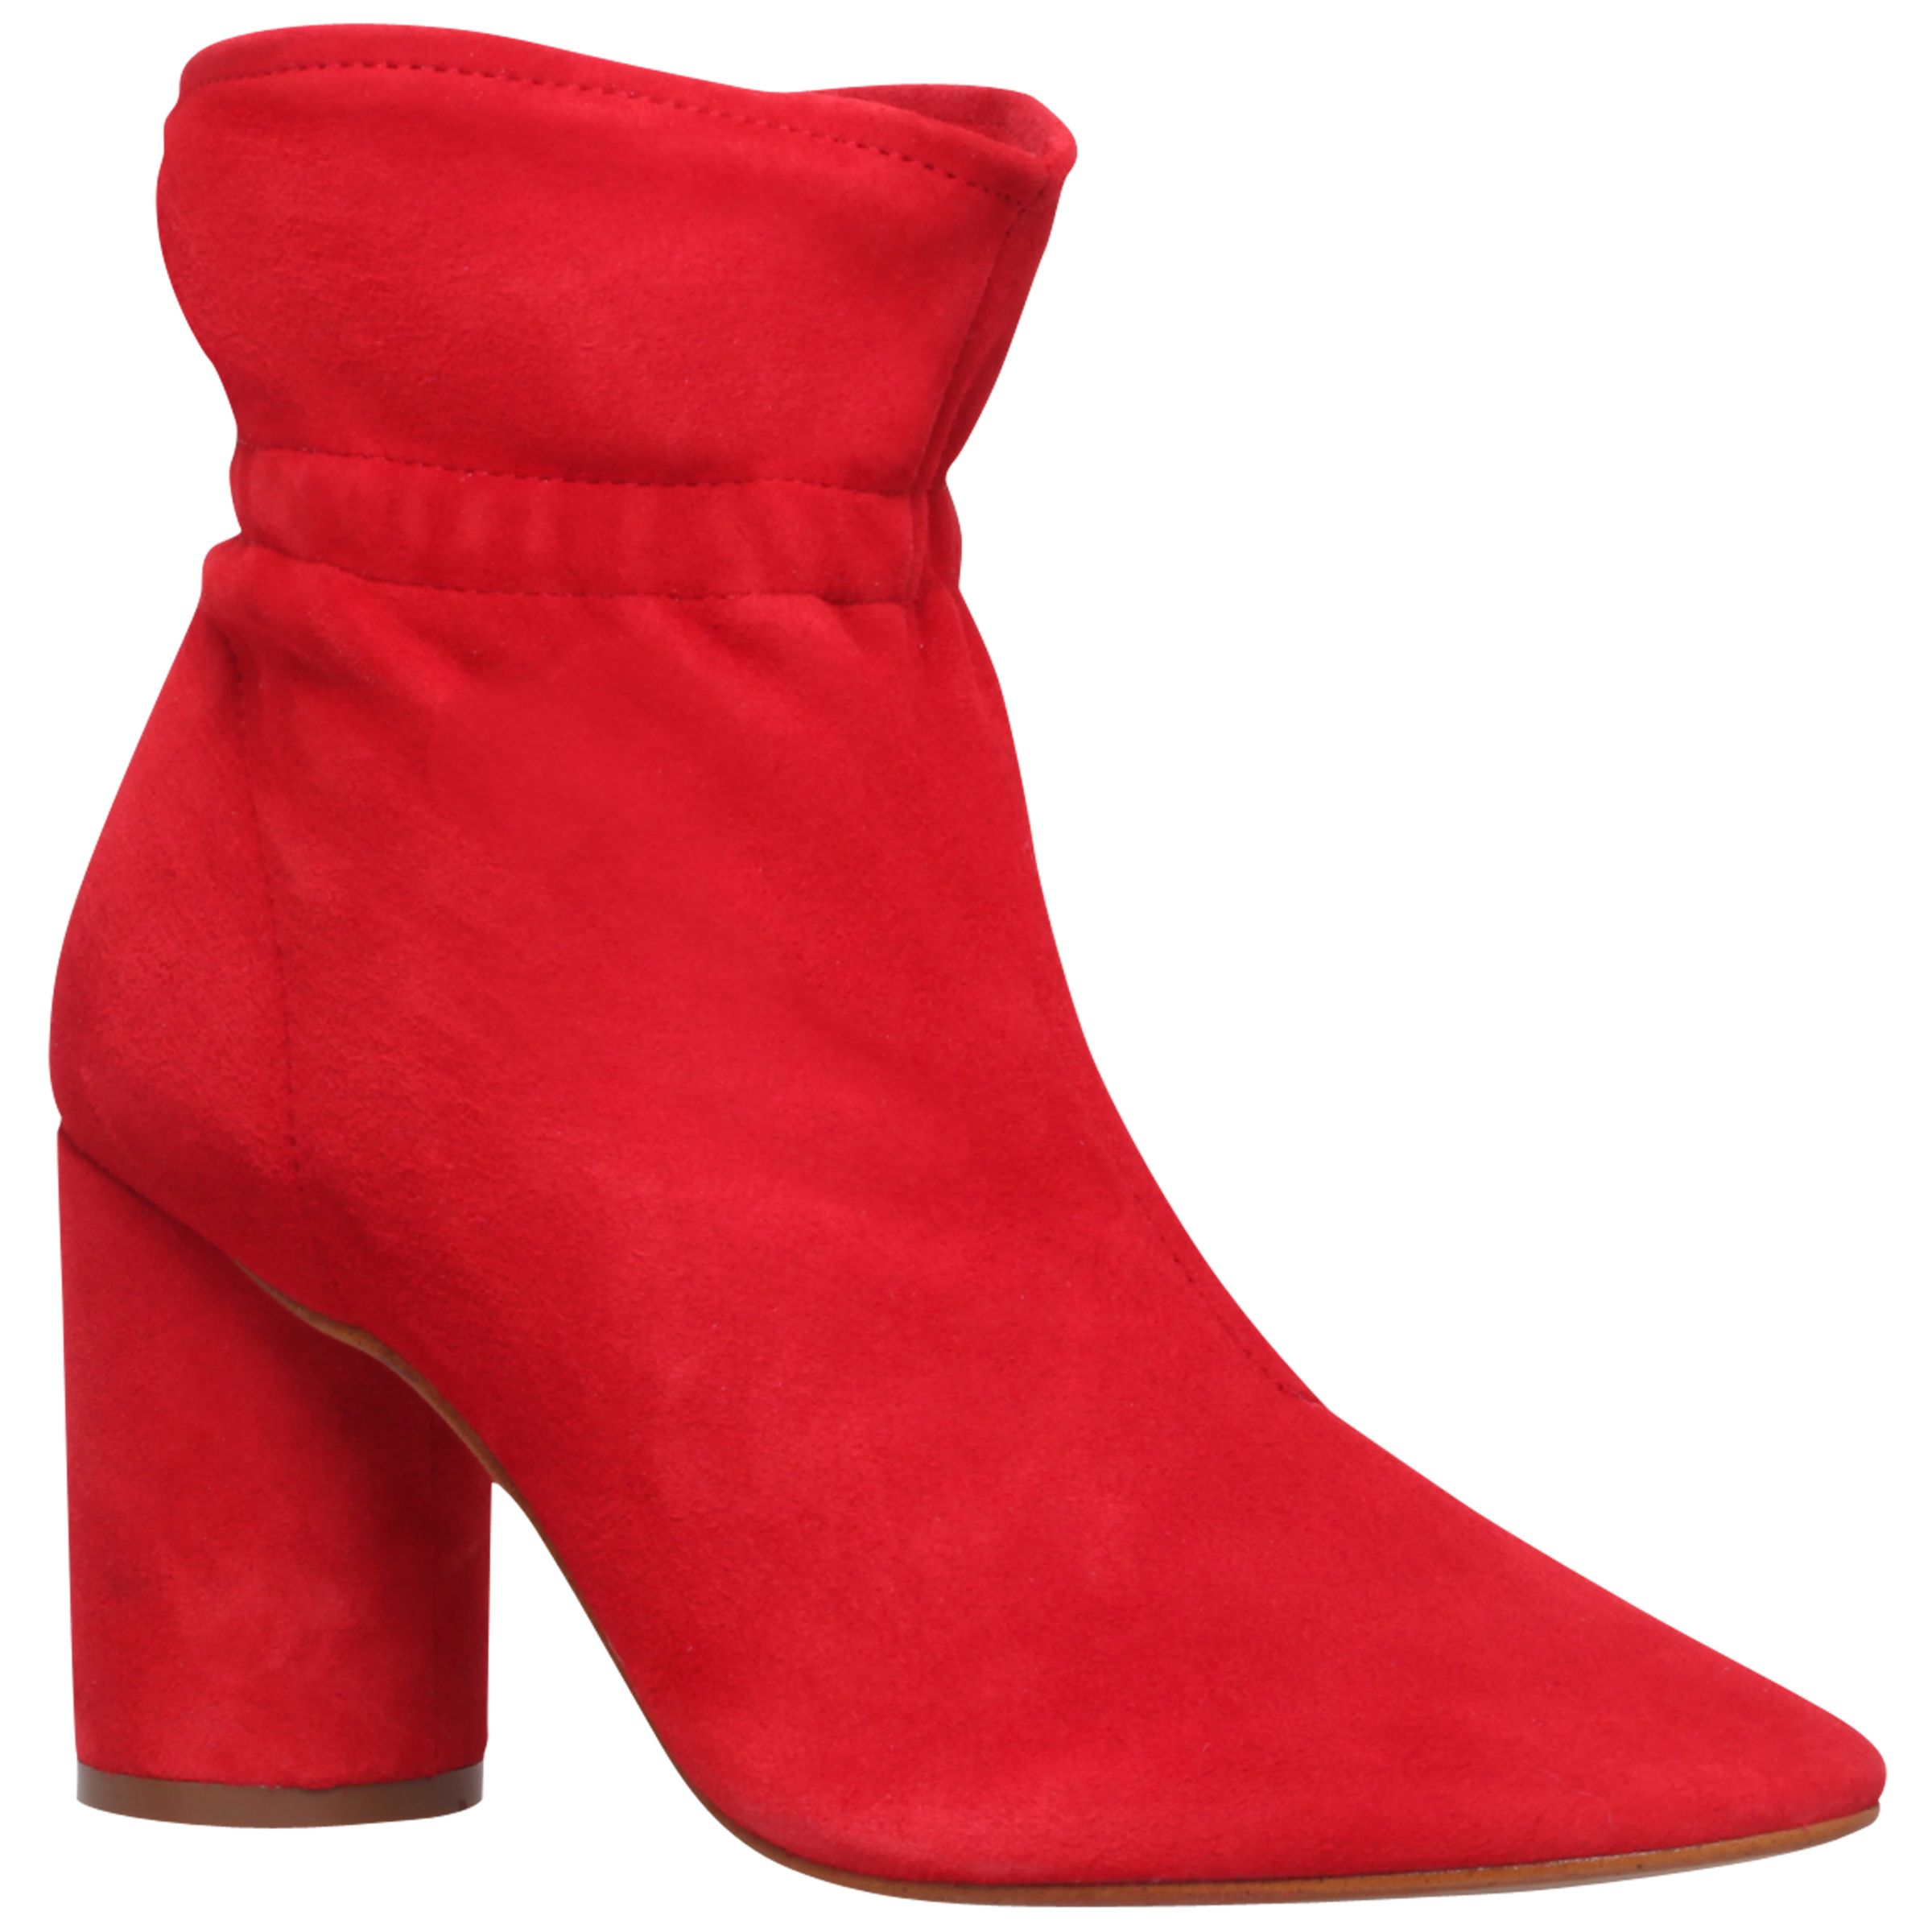 KG by Kurt Geiger KG by Kurt Geiger Raglan Block Heeled Ankle Boots, Red